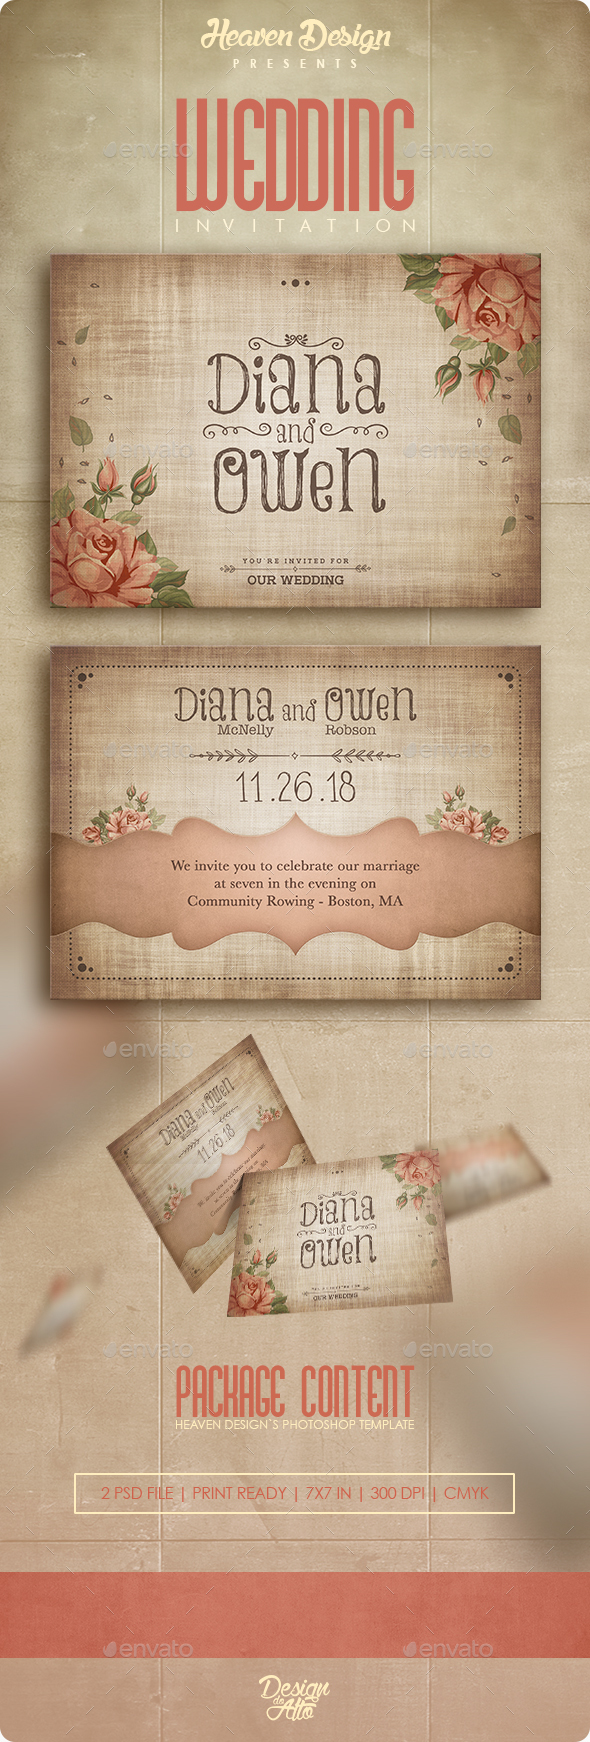 Wedding Roses | Invitation